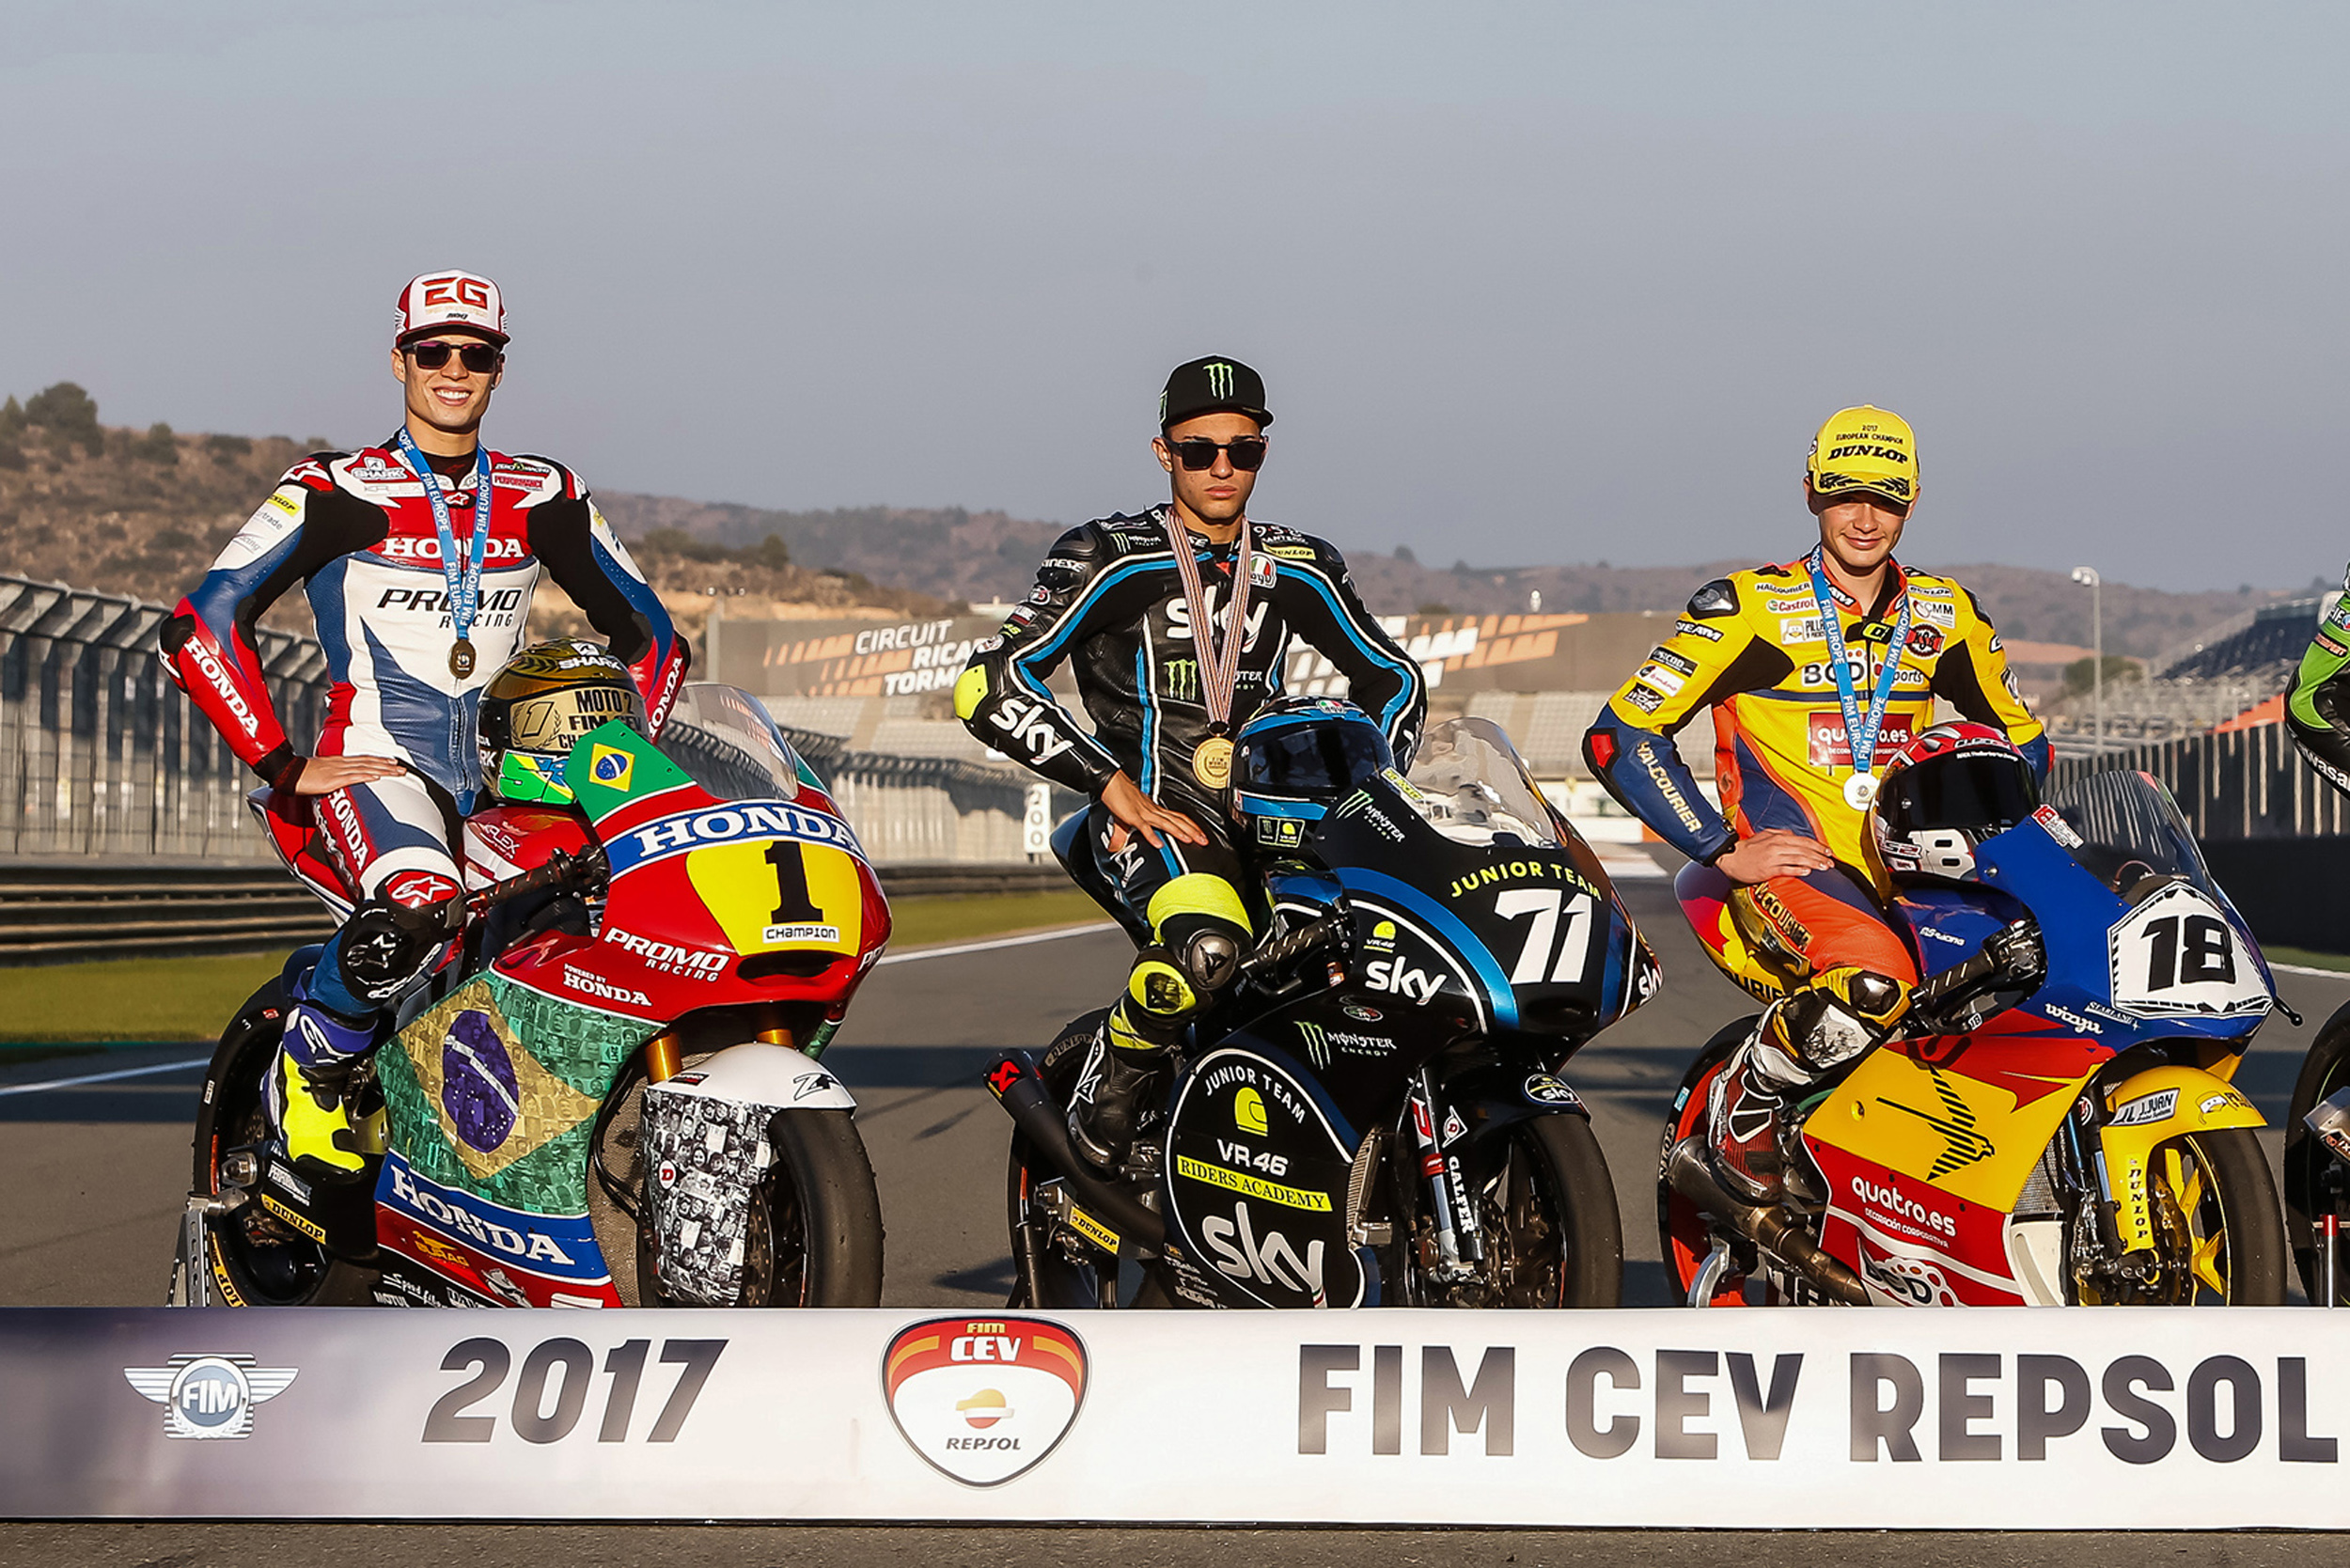 Granado and González join Foggia as FIM CEV Repsol Champions